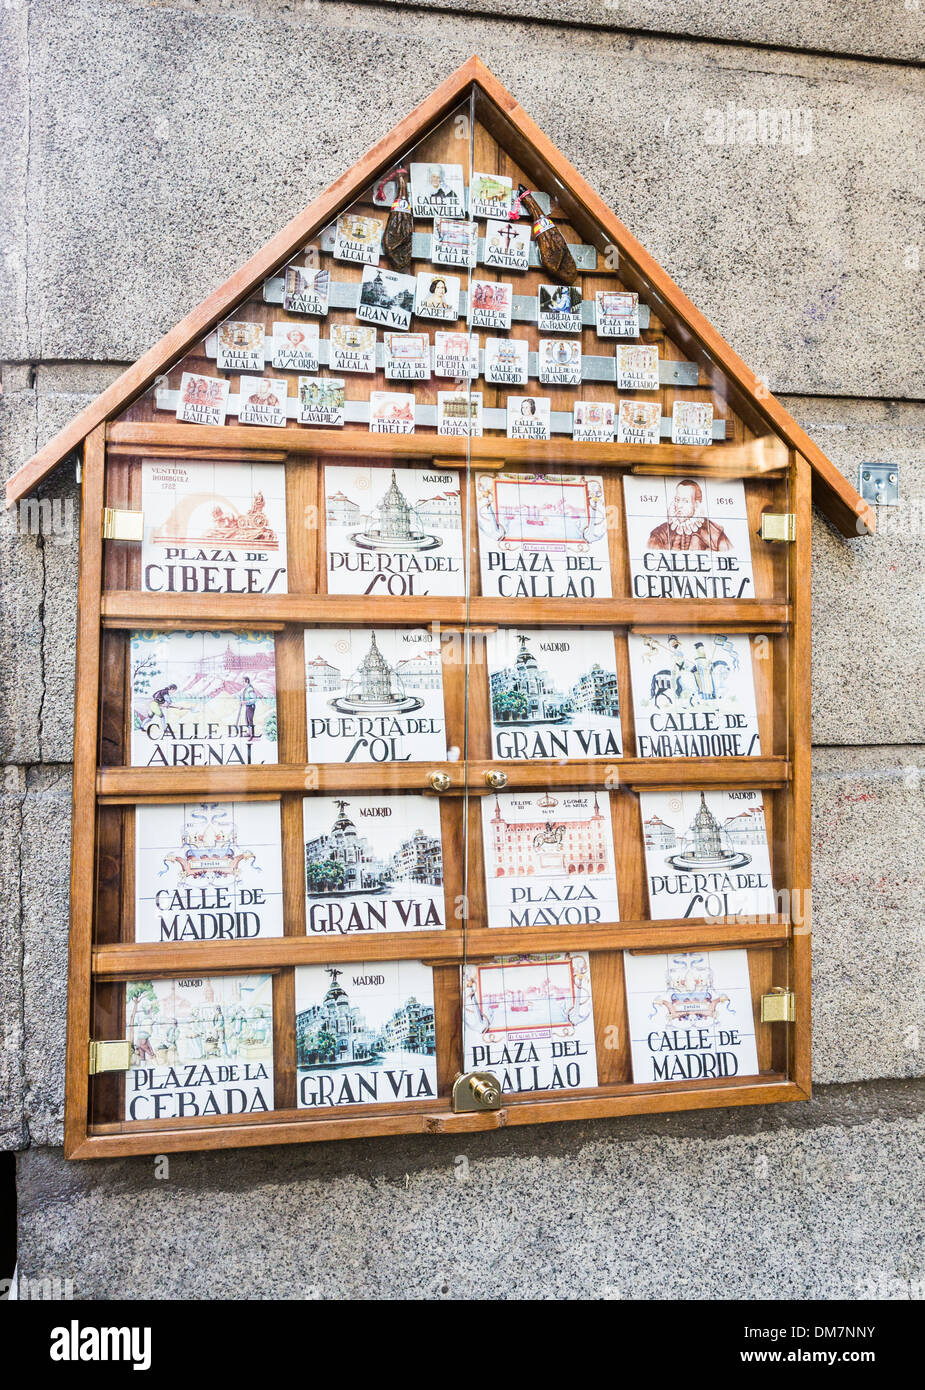 Spain madrid ceramic tiles stock photos spain madrid ceramic display of traditional ceramic tile street names as tourist souvenirs madrid spain stock dailygadgetfo Gallery